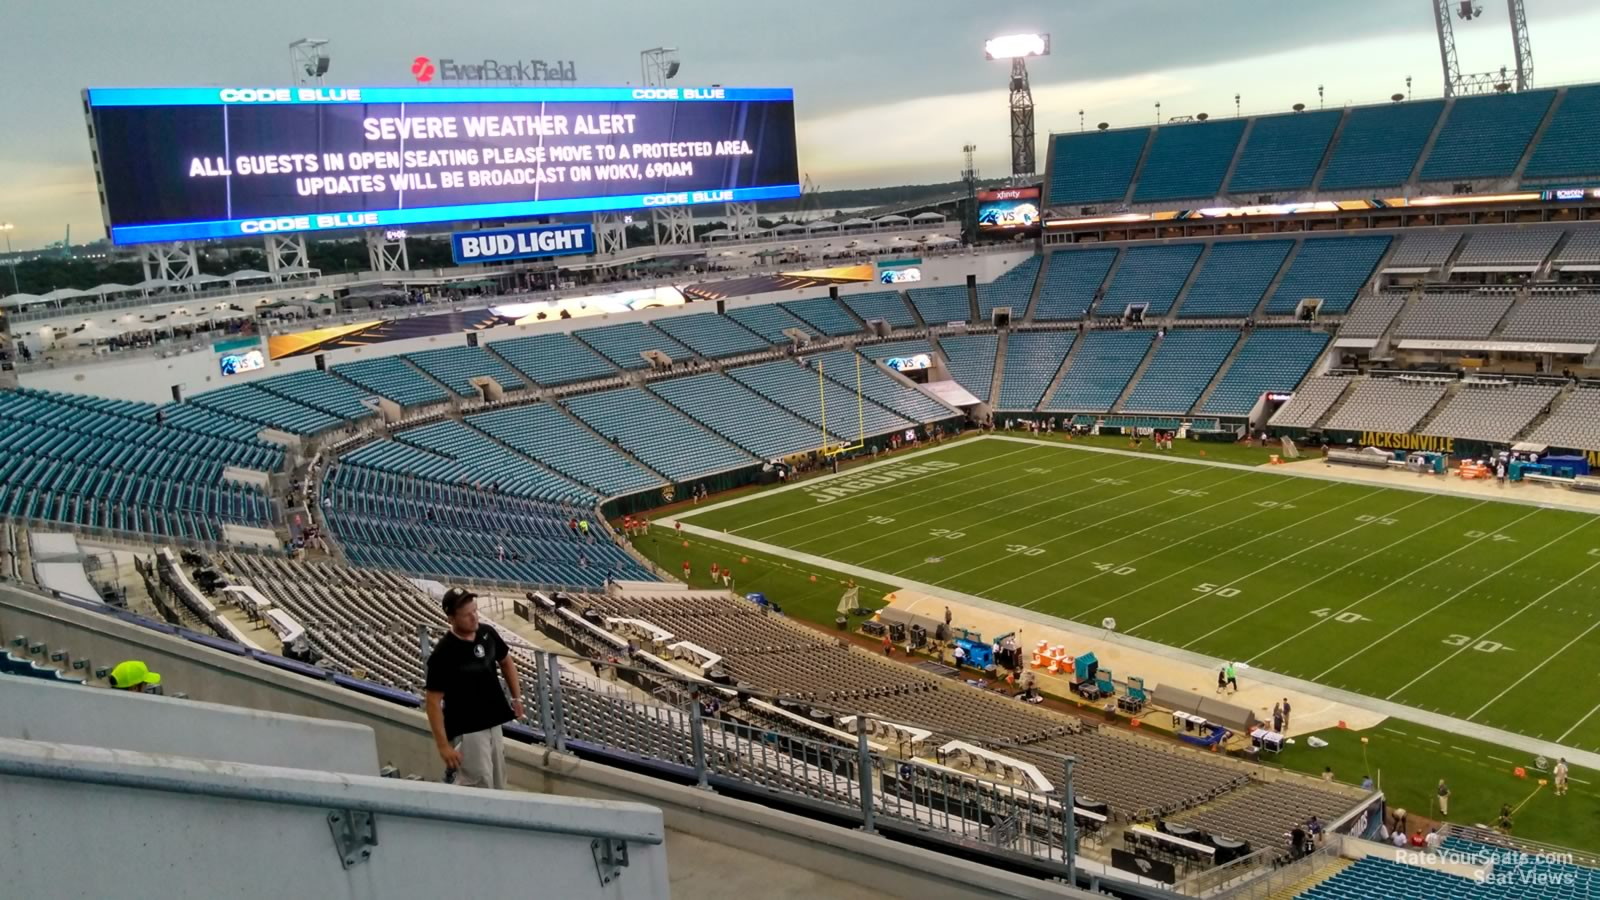 Section 405 seat view